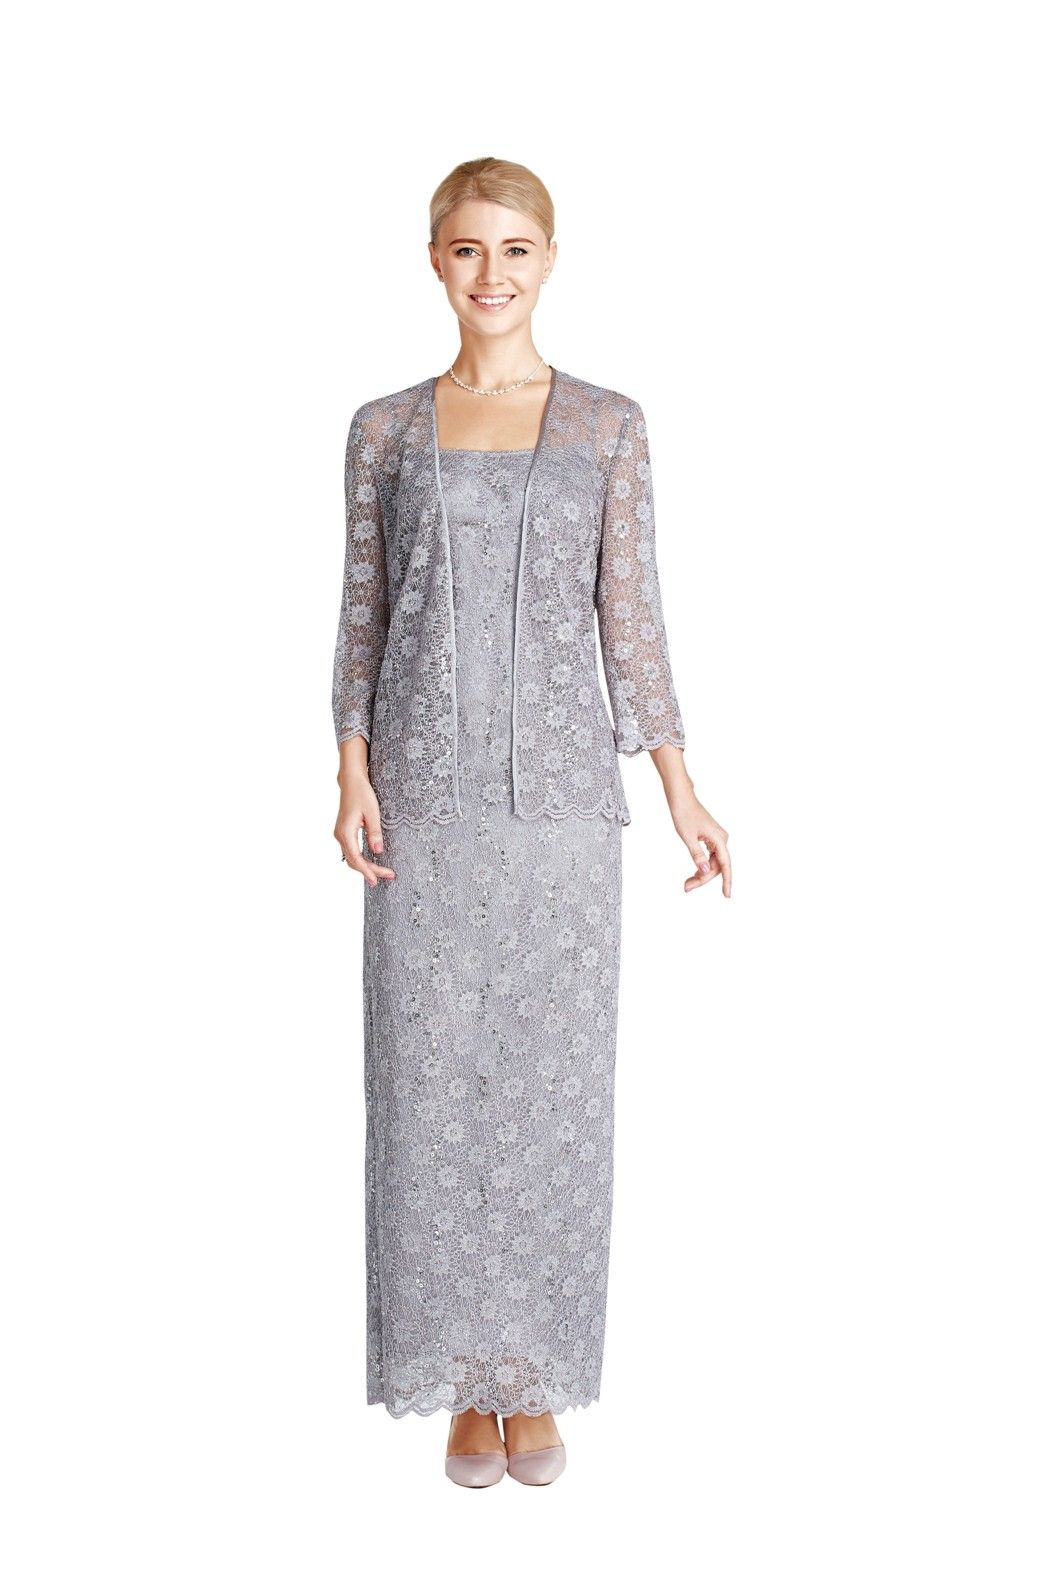 Stunning piece long dress u jacket in lace fabric great mother of